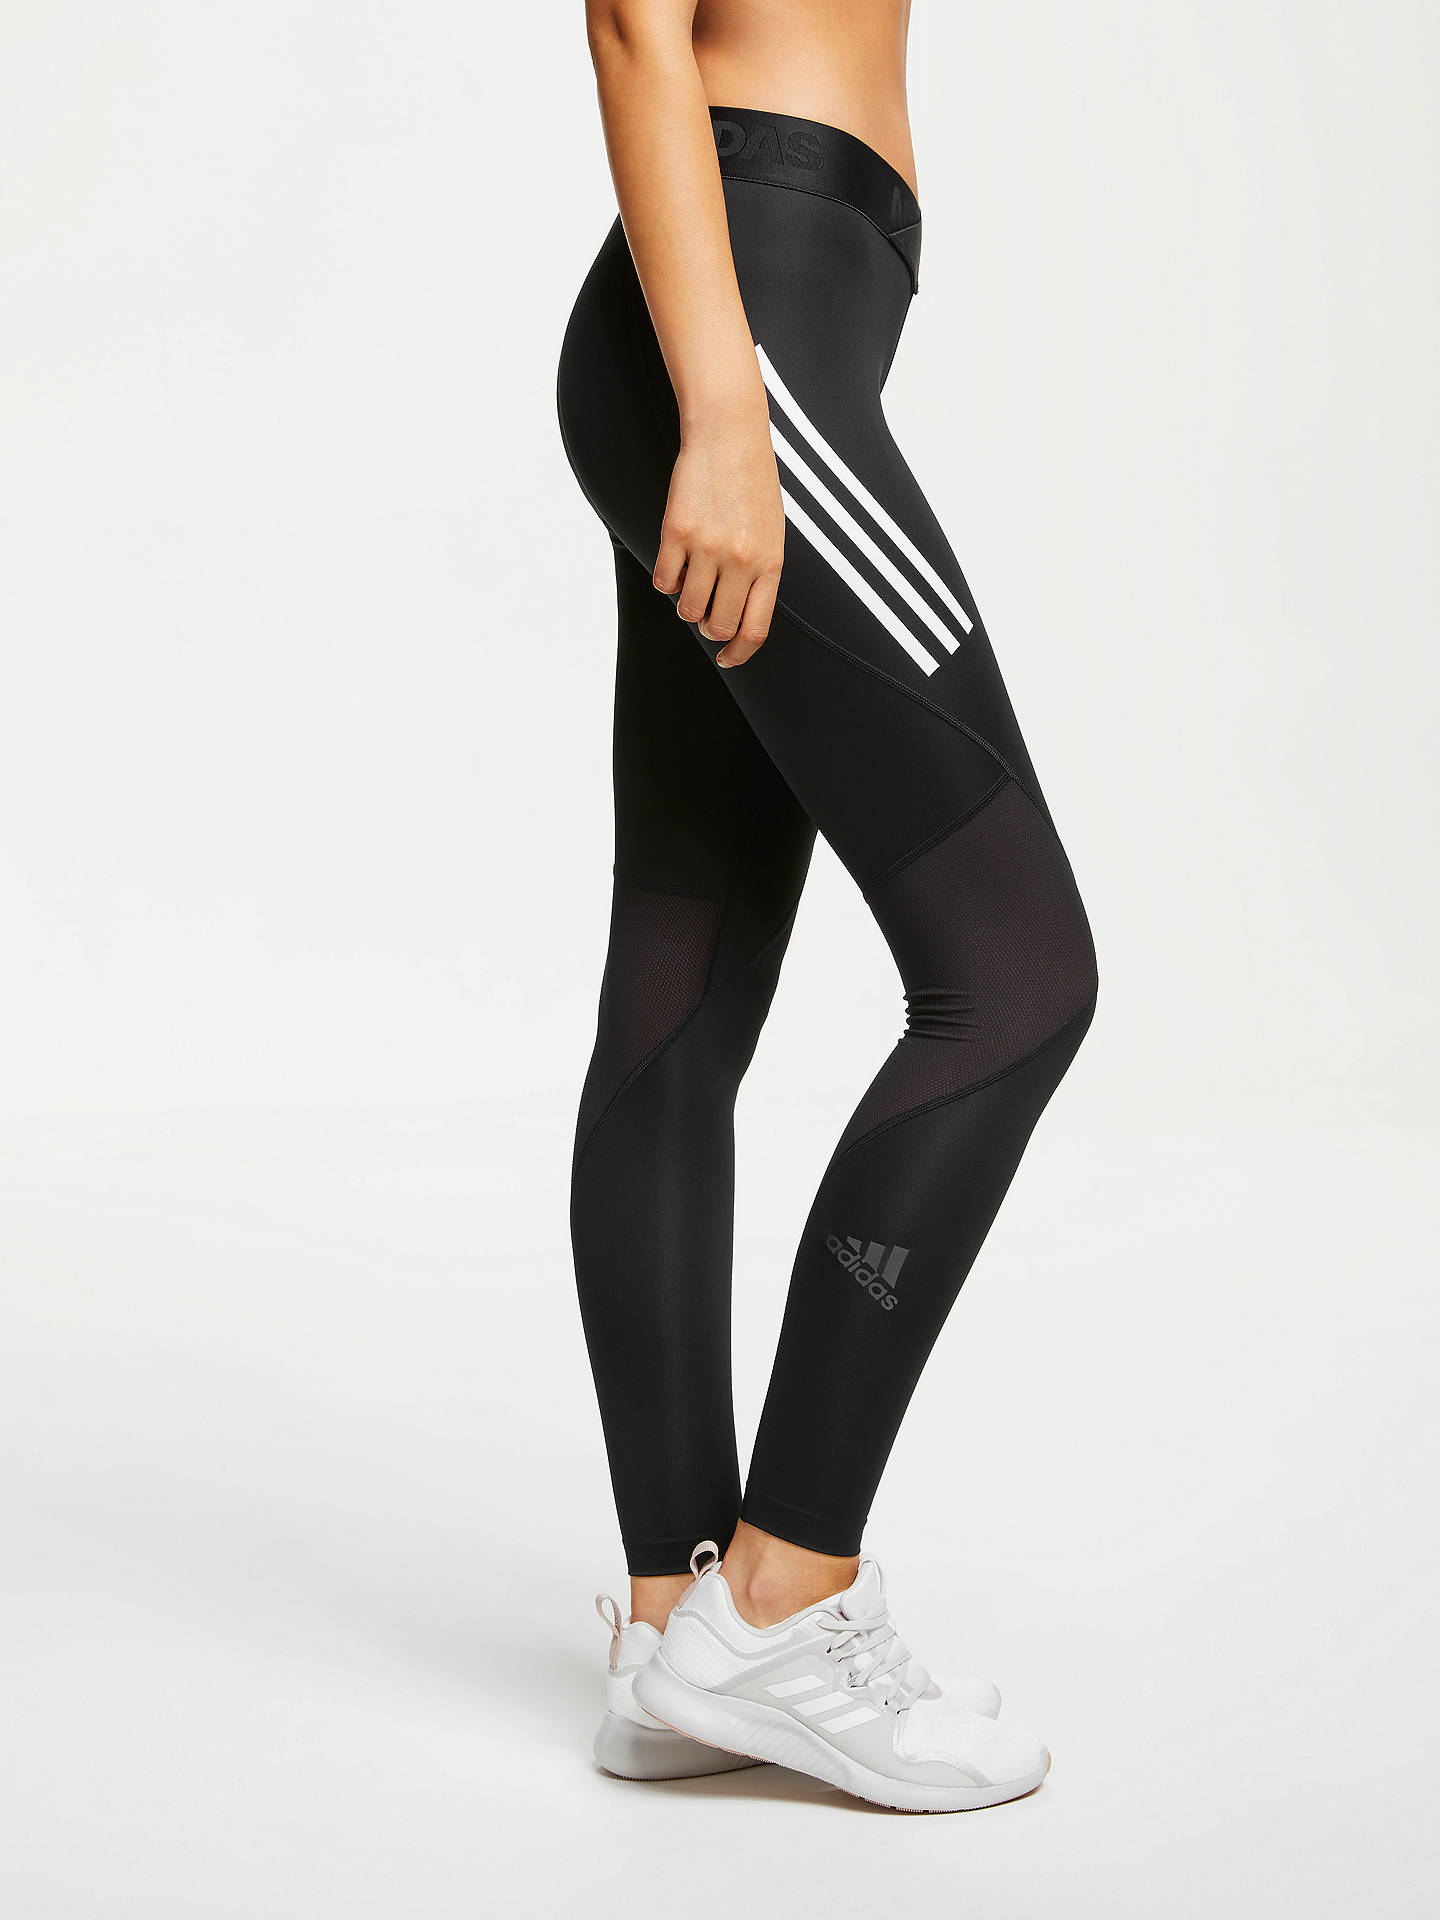 009e3686656ce ... Buy adidas Alphaskin Sport 3-Stripes Long Training Tights, Black, M  Online at